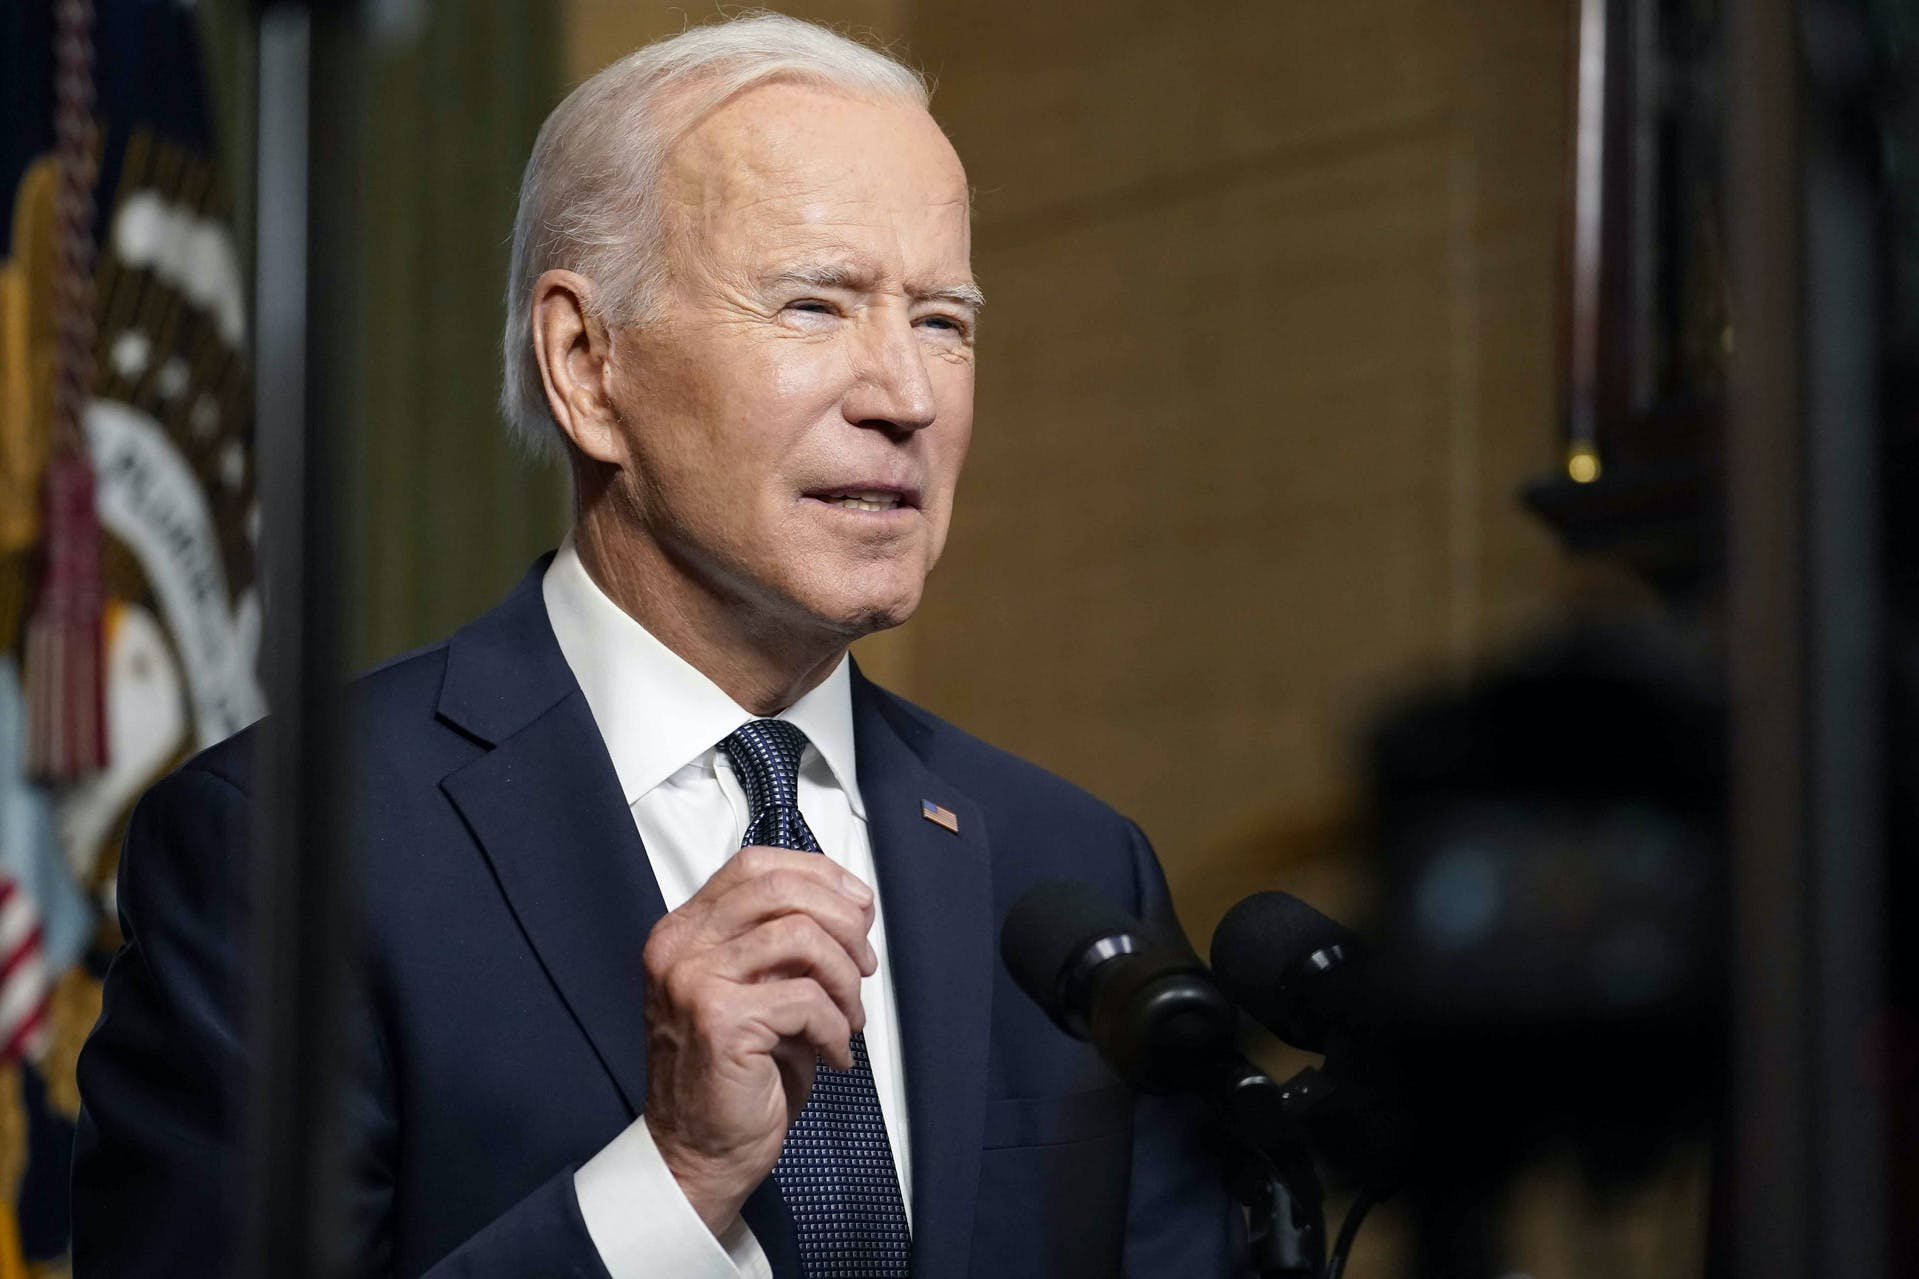 The Biden administration is assembling the plan ahead of a major international climate summit the president plans to host April 22-23.